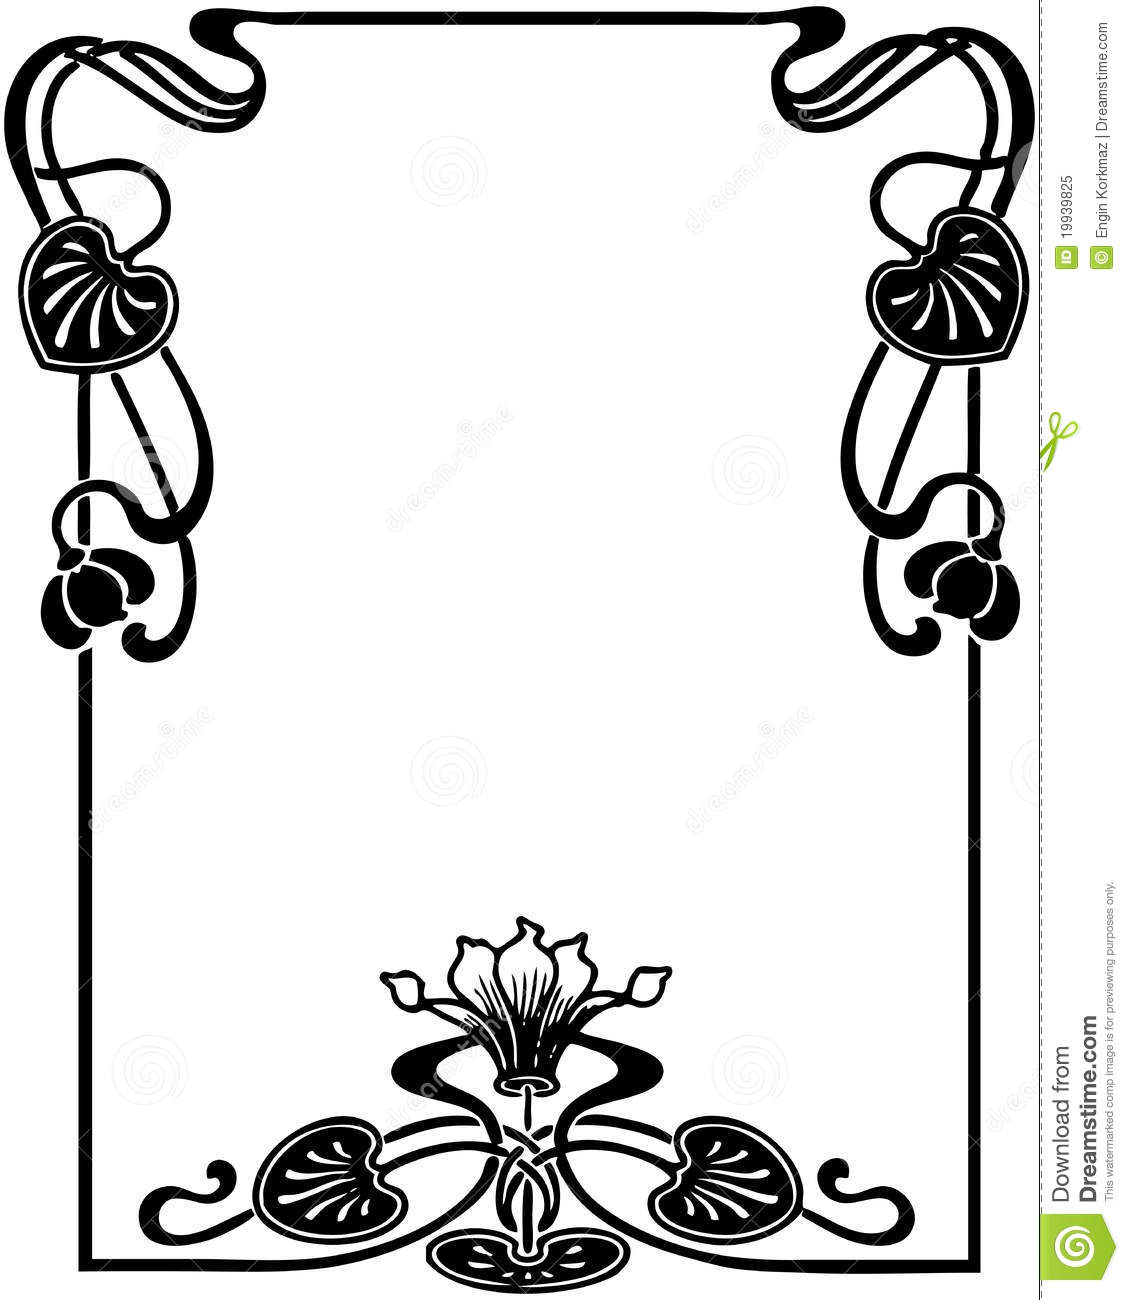 Floral Art Nouveau Frame Royalty Free Stock Photo - Image: 19939825